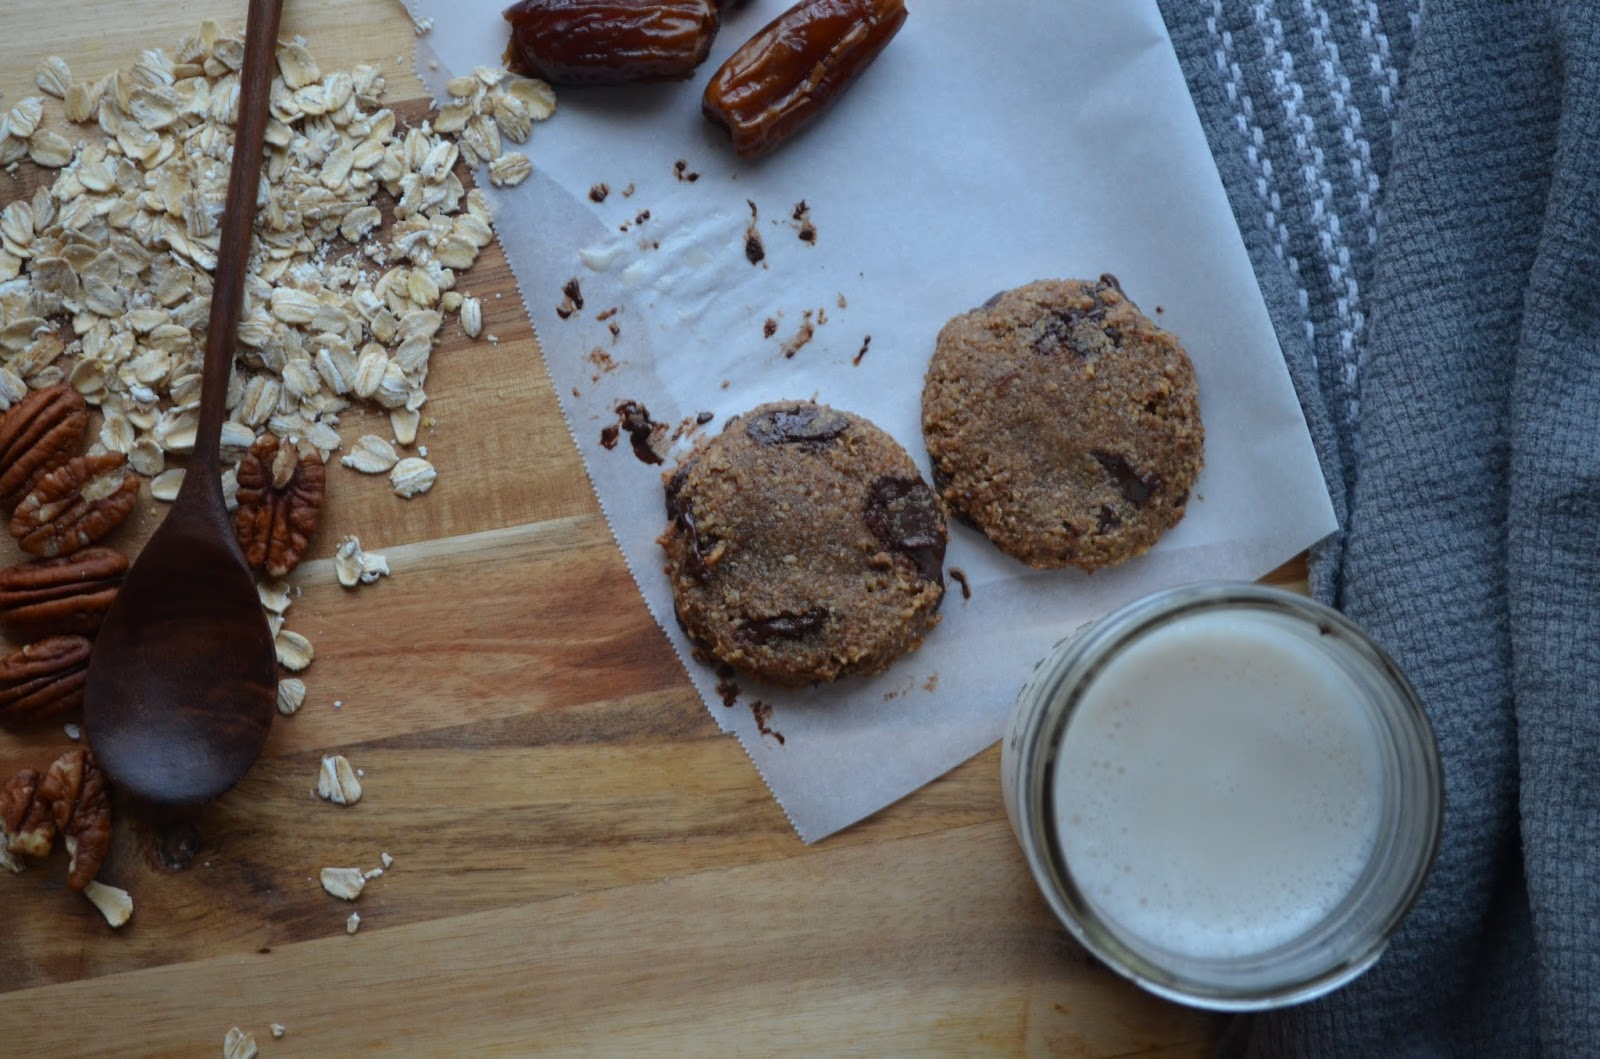 walnut date chocolate spiced walnut date chocolate spiced walnut date ...